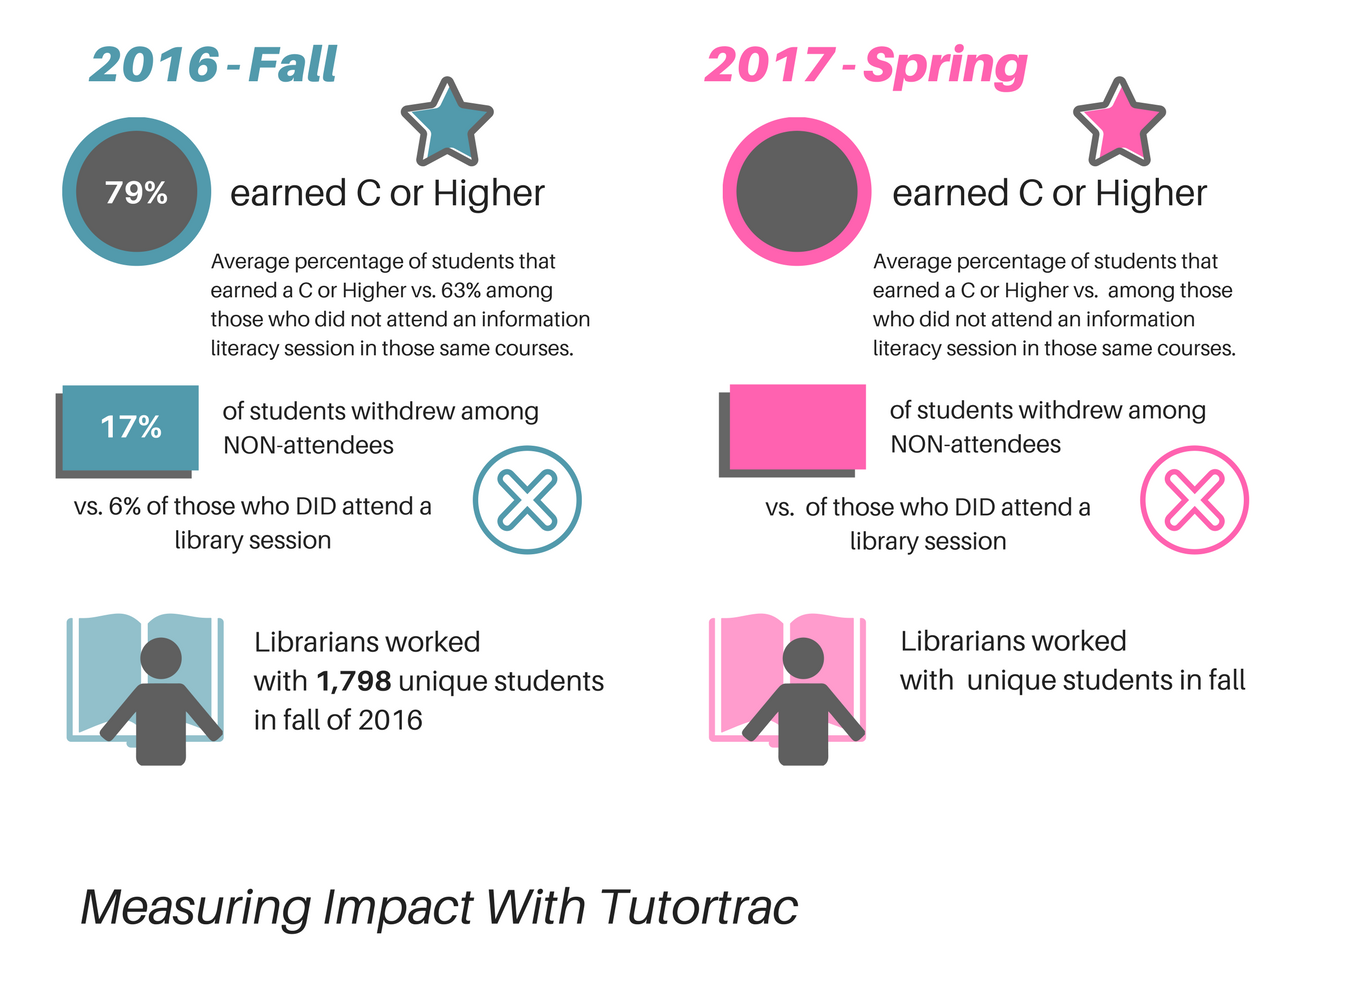 Image: Data on student performance as measured by tutortrac